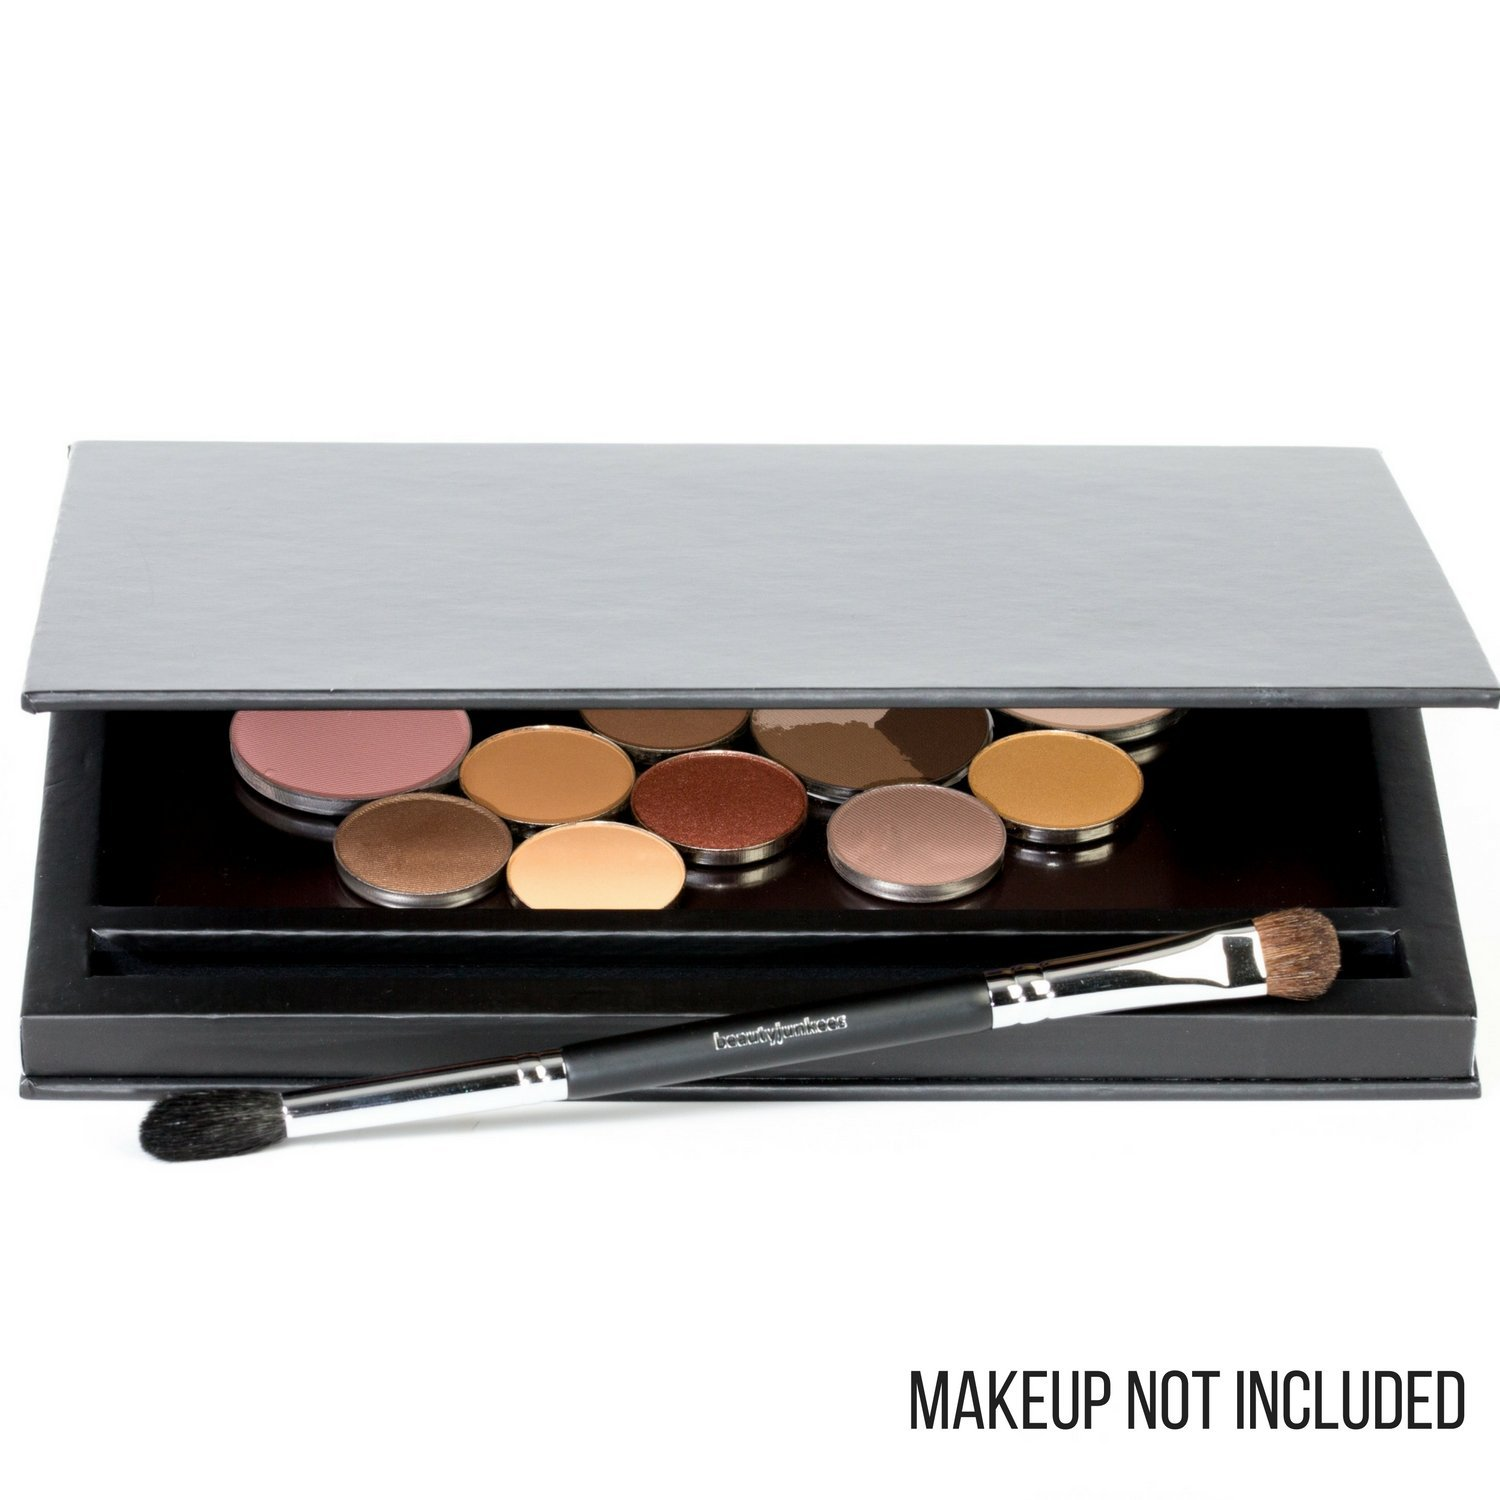 Large Black Empty Magnetic Makeup Palette with Mirror: Organizer Case for Eye... image 7